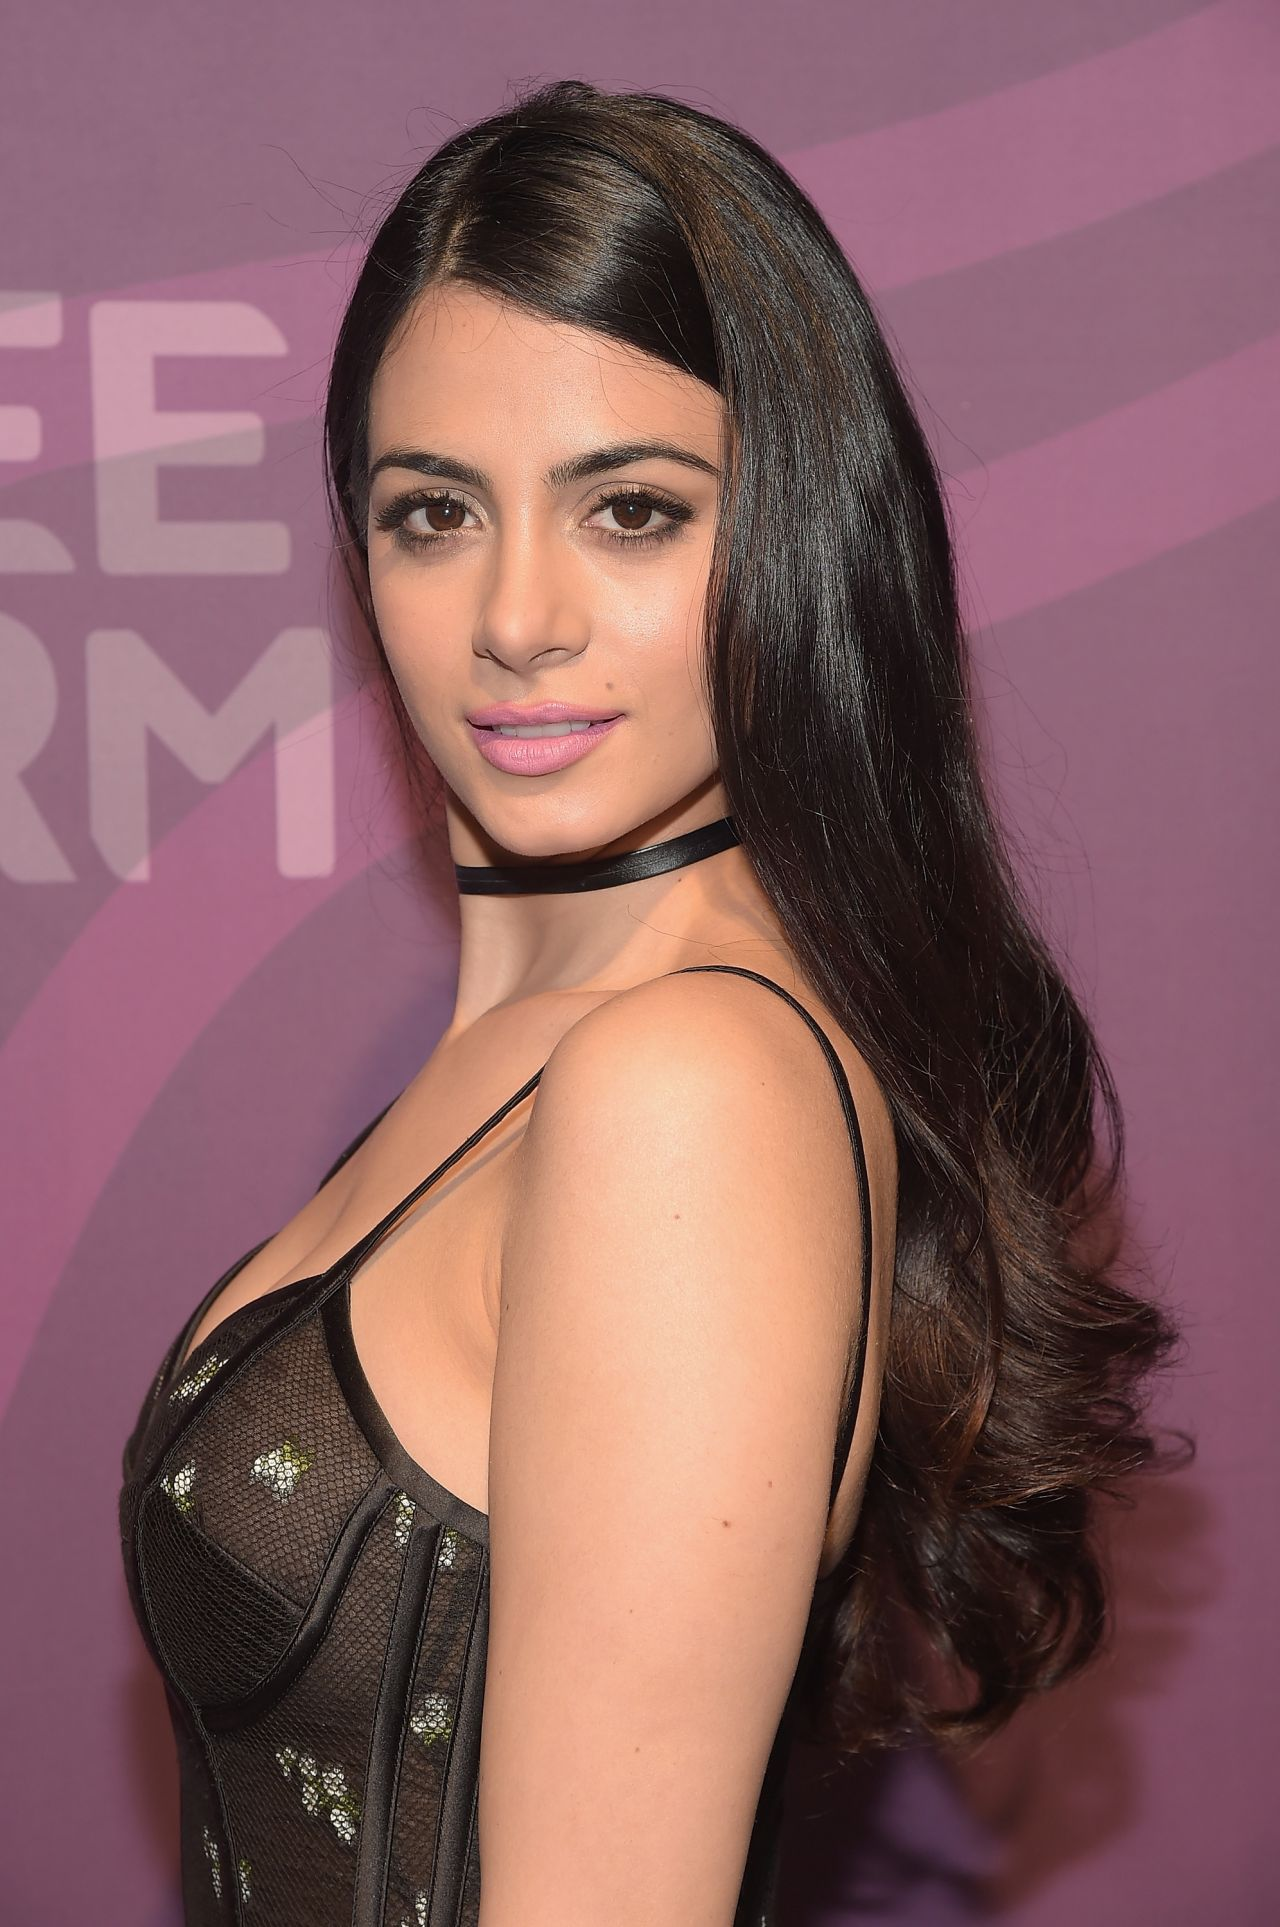 Pictures Emeraude Toubia nudes (72 foto and video), Topless, Leaked, Feet, in bikini 2015